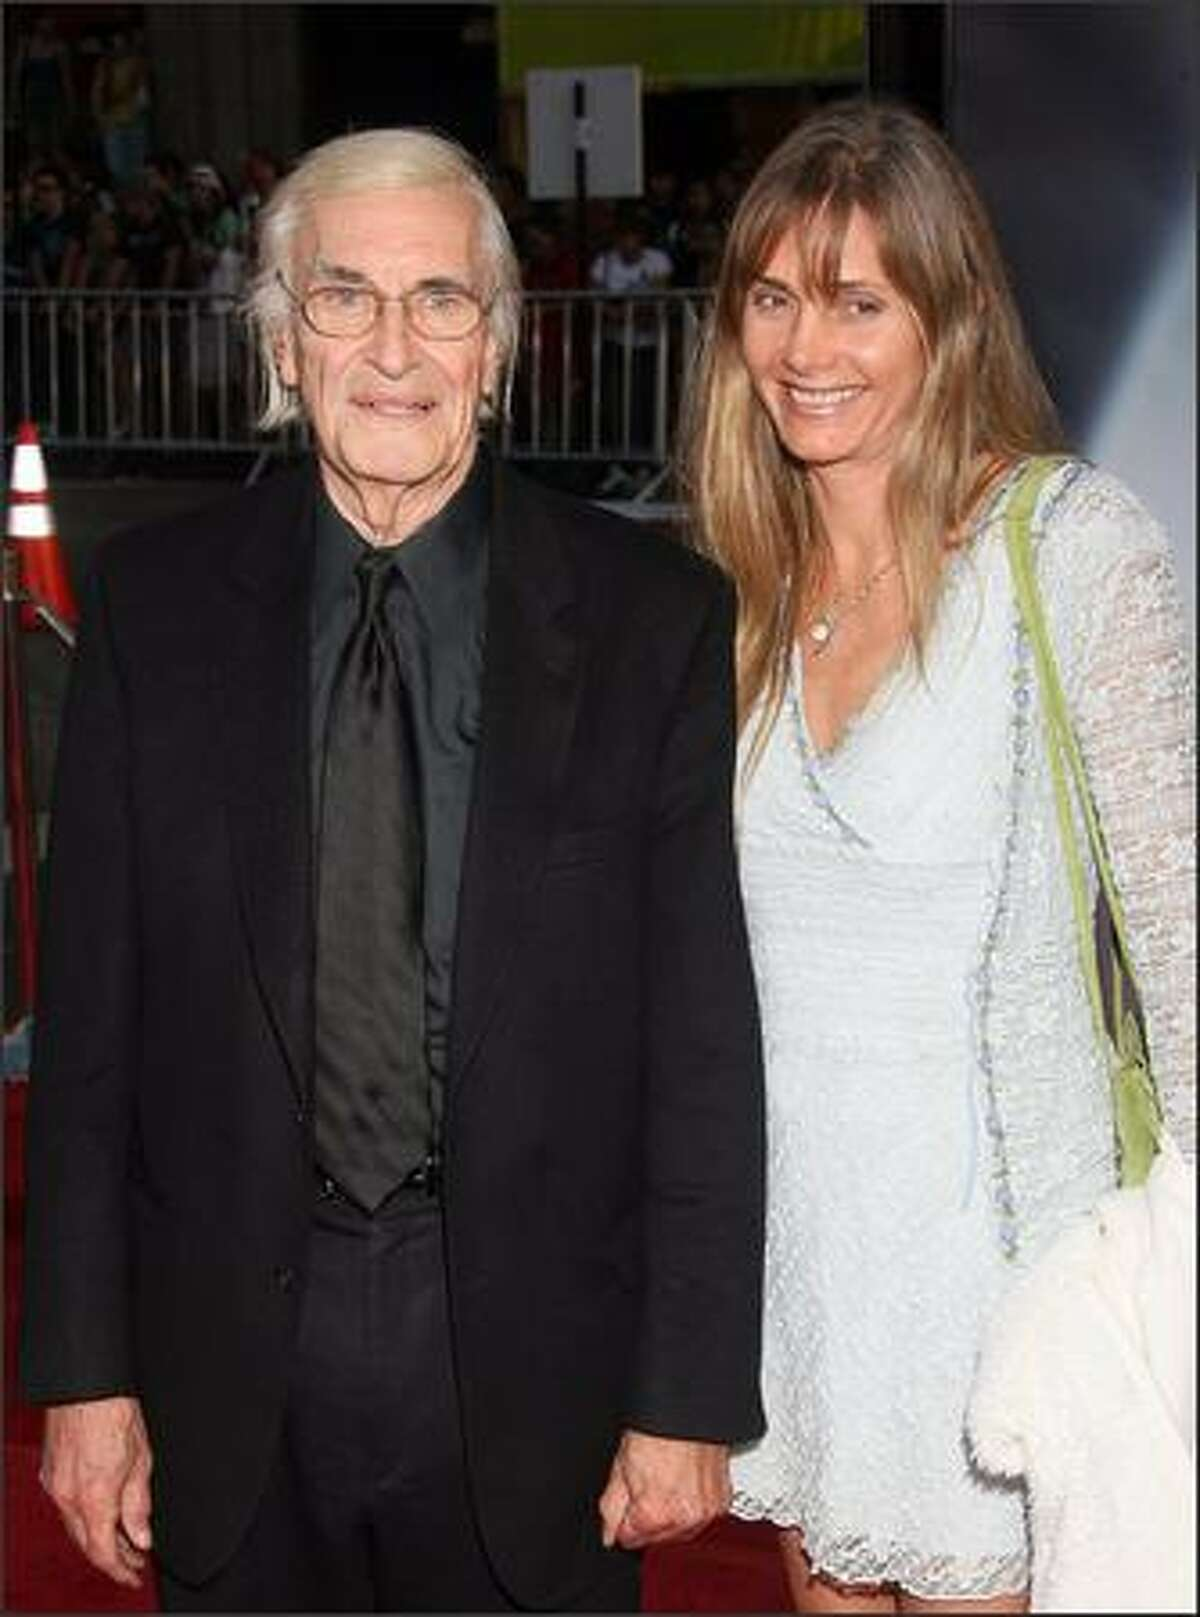 Actor Martin Landau and Gretchen Becker arrive for the premiere of